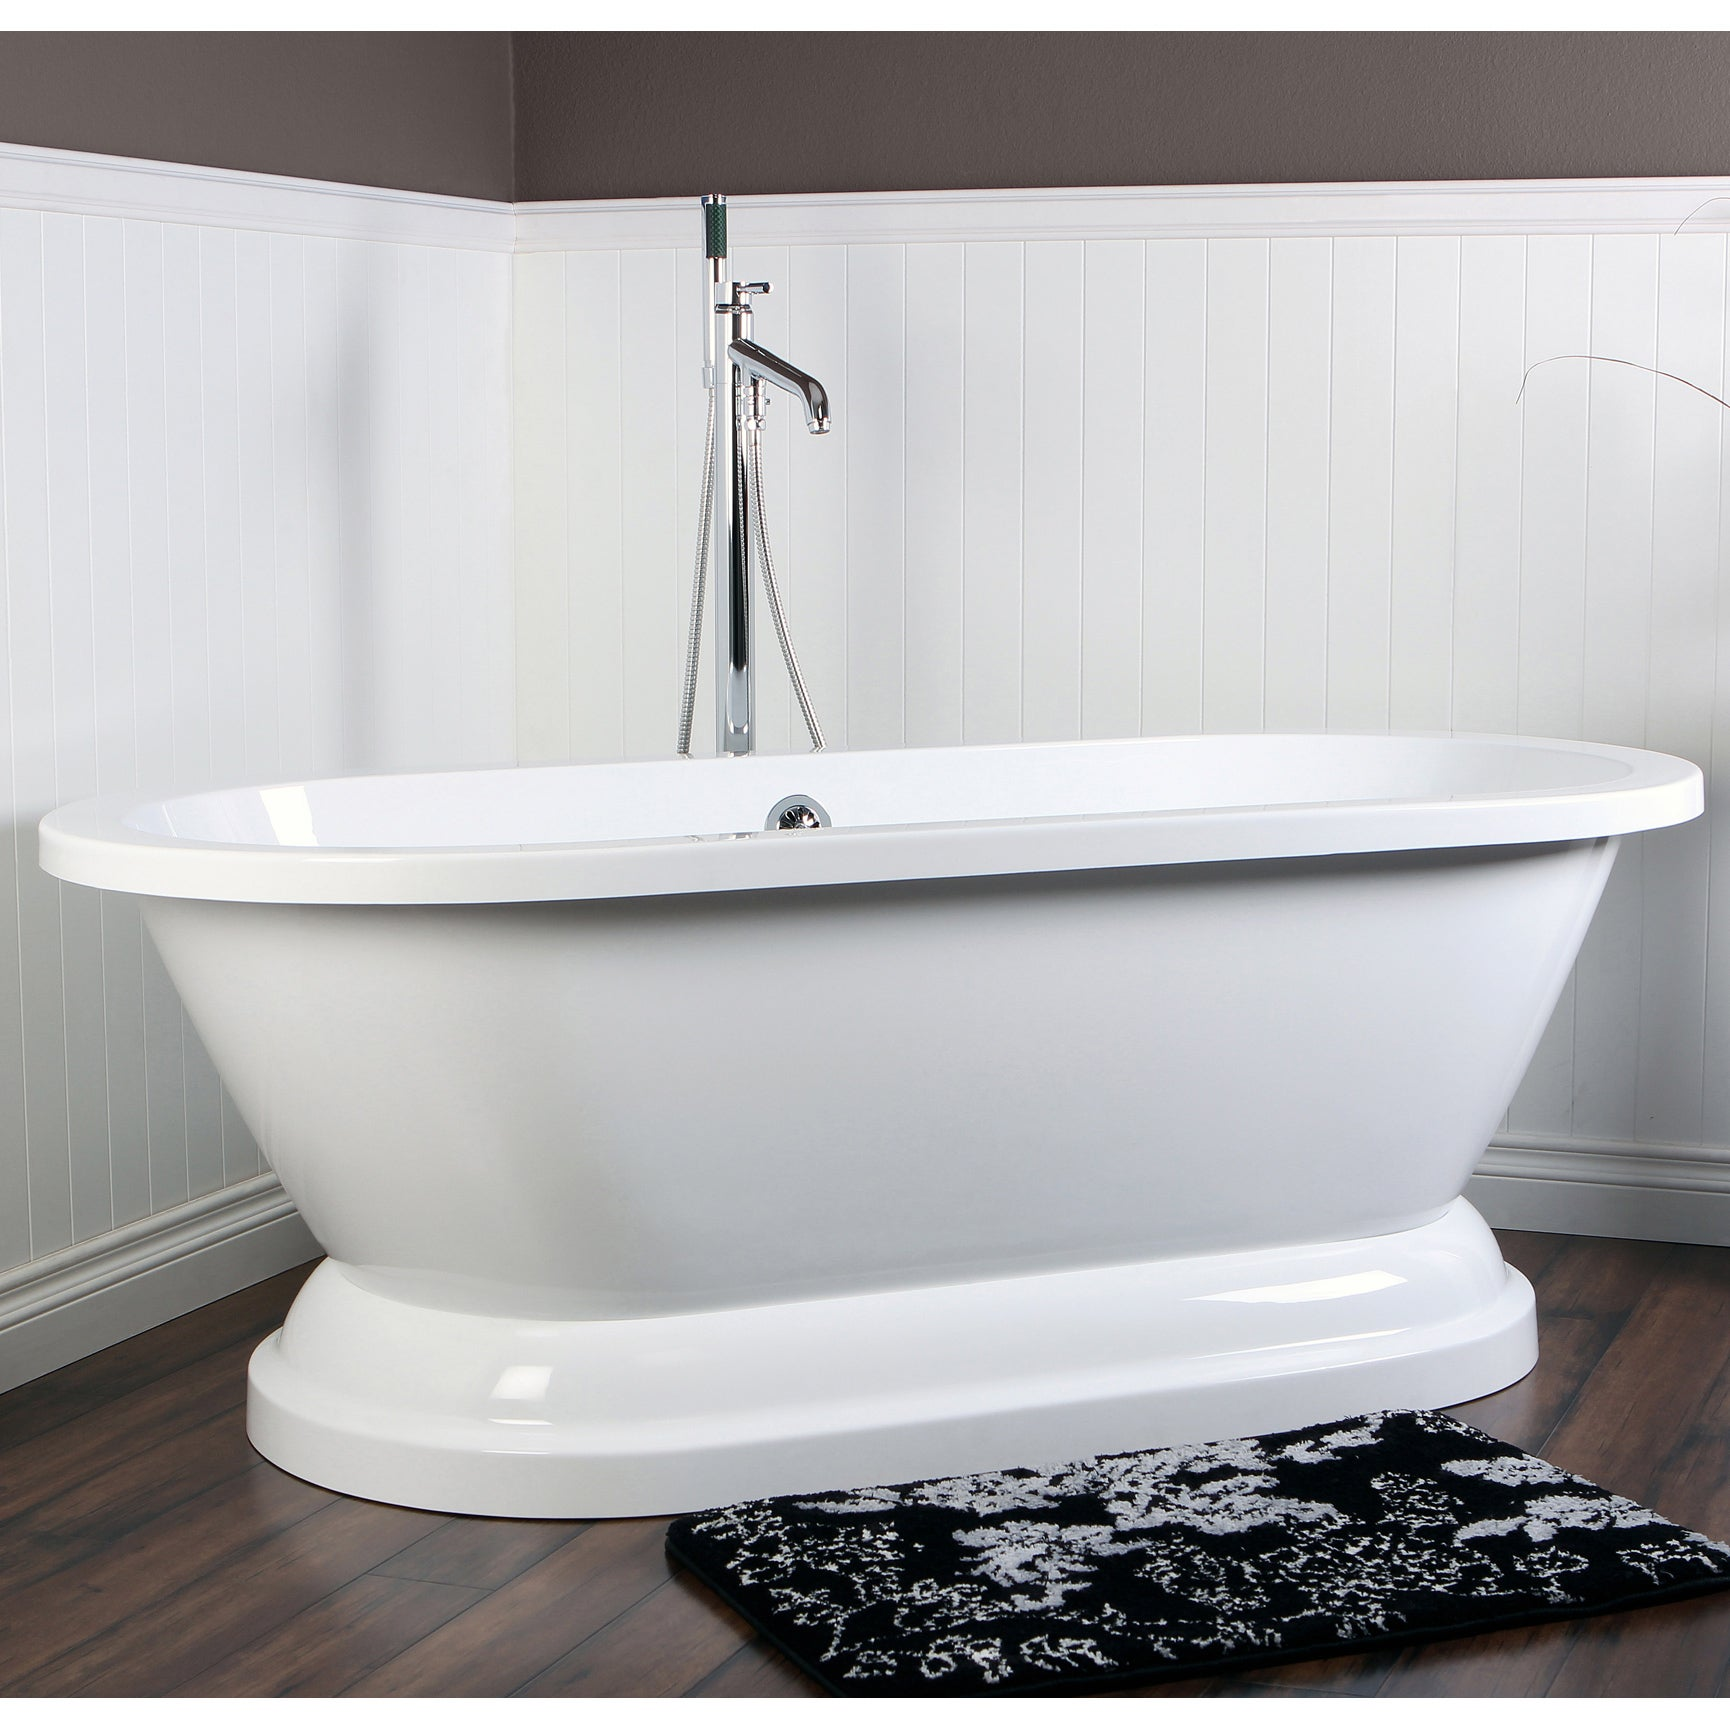 Attirant Contemporary Double Ended 67 Inch Acrylic Pedestal Bathtub